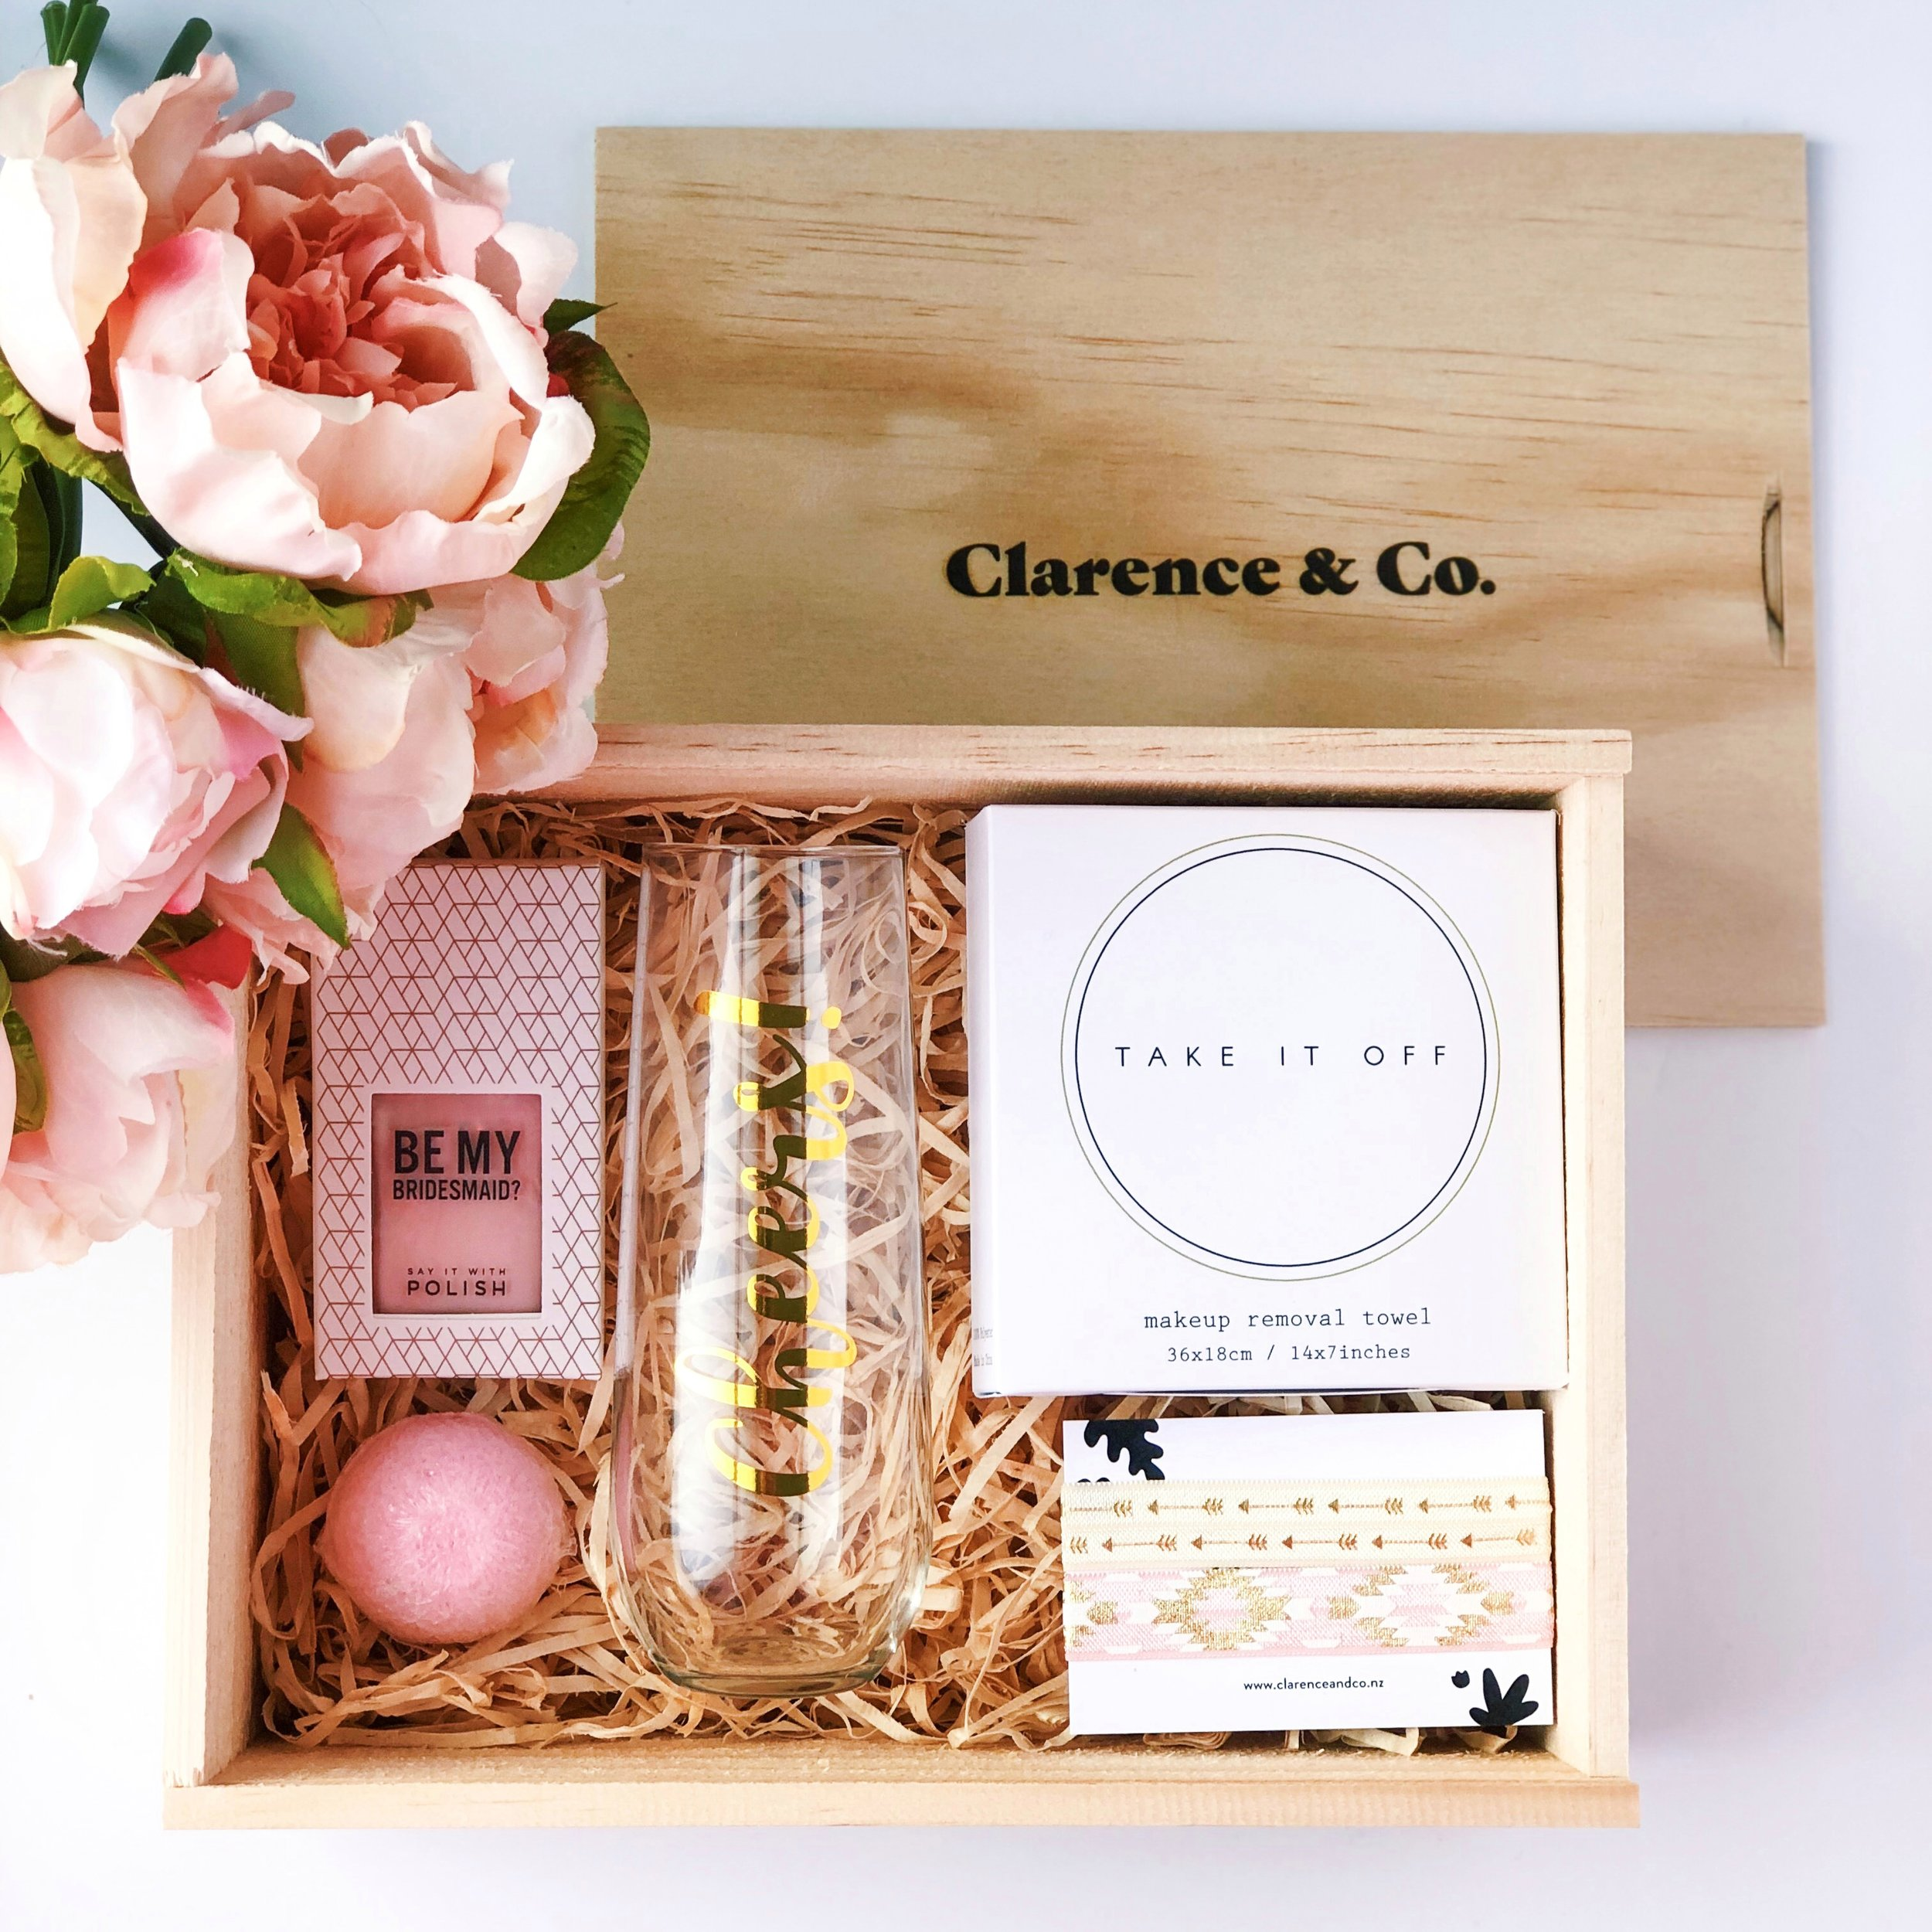 """Clarence & Co. Box   Beautifully packaged in our New Zealand-made pine plywood gift boxes and wrapped with ribbon. We love that these boxes can be reused for a lifetime.   Set of two assorted """"to have and to hold"""" hair ties   These bridesmaid themed hair ties are an extra cute addition when asking your besties to help you """"tie the knot"""".   Light blue or pink bath bomb   Lovingly hand-crafted in NZ, these bath bombs are cruelty free and all-natural. Pamper time before the wedding is a must!"""